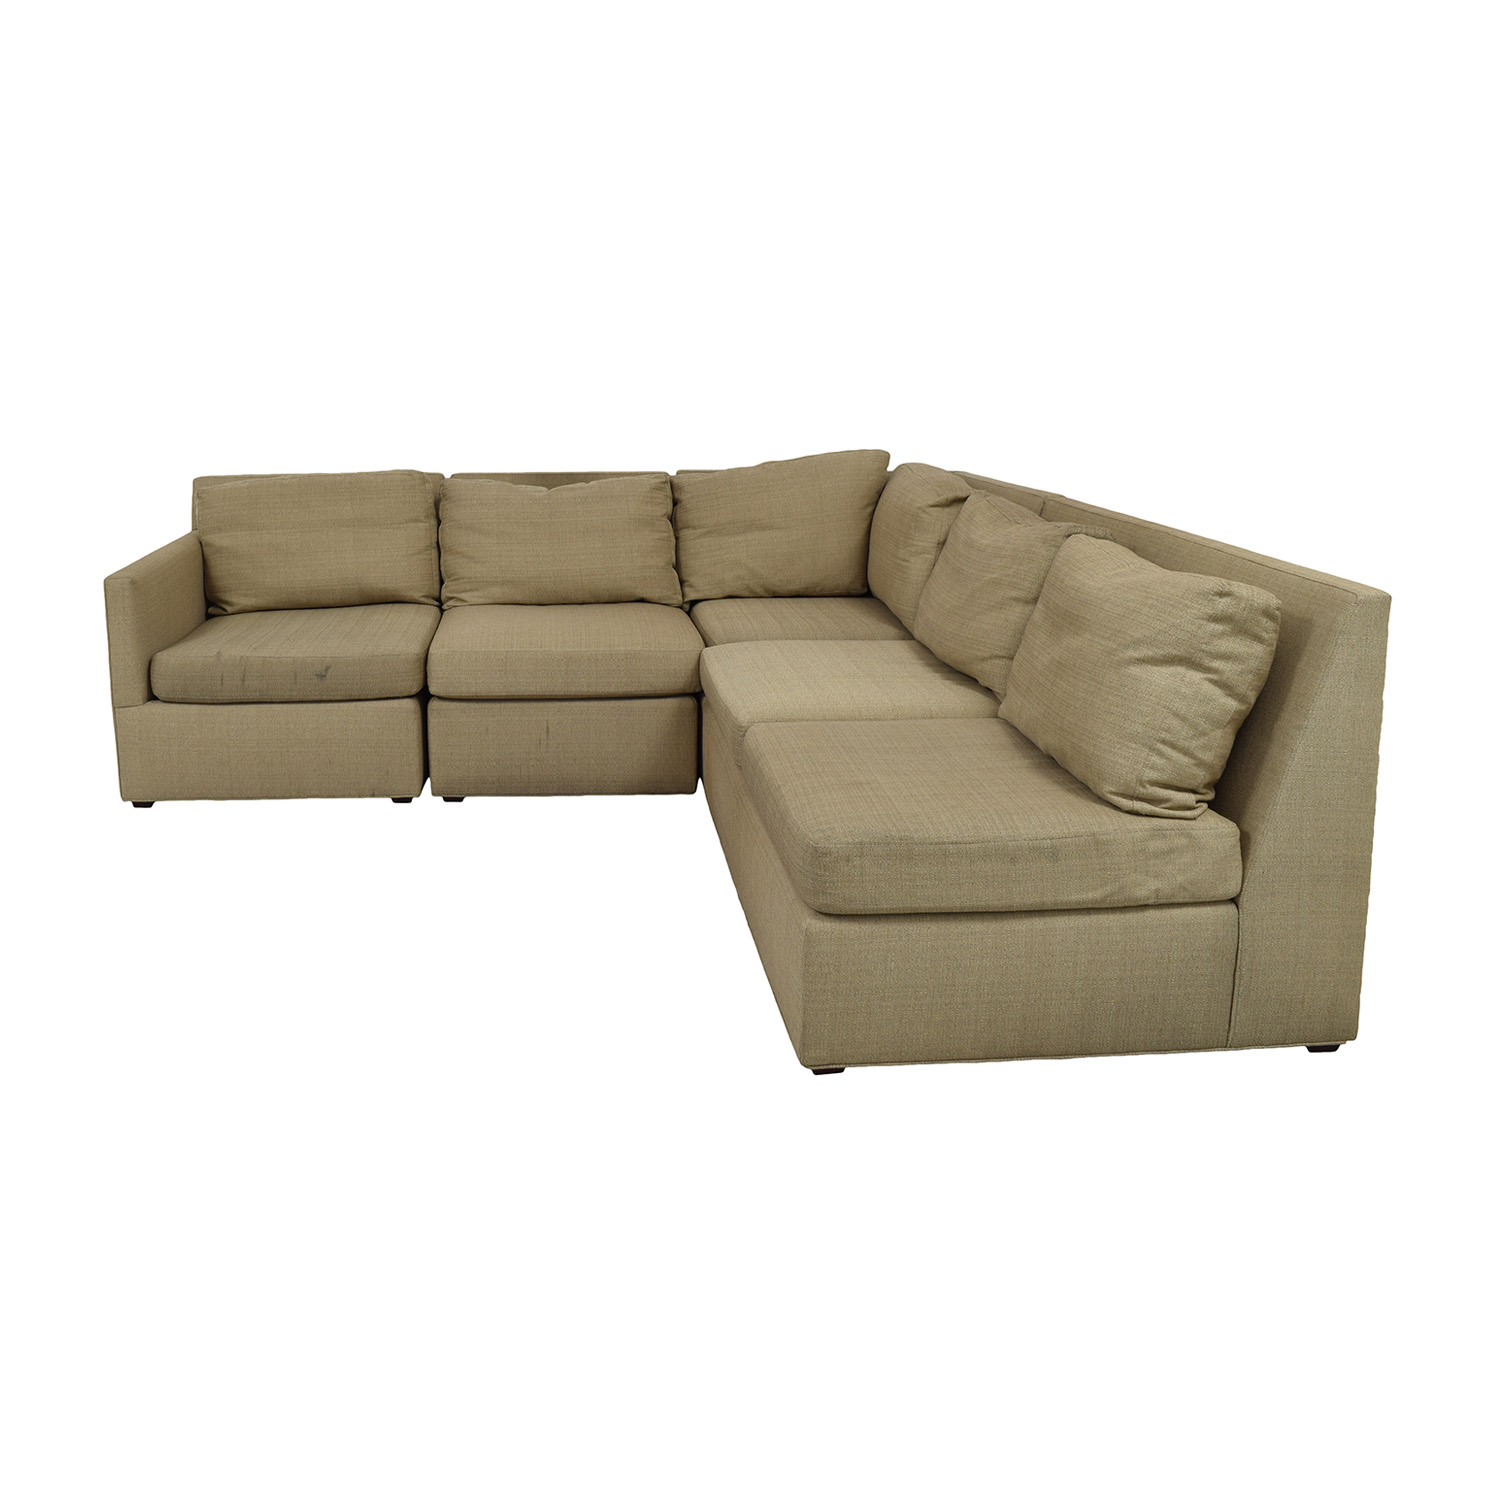 shop Crate & Barrel Crate & Barrel Beige L-Shaped Sectional online